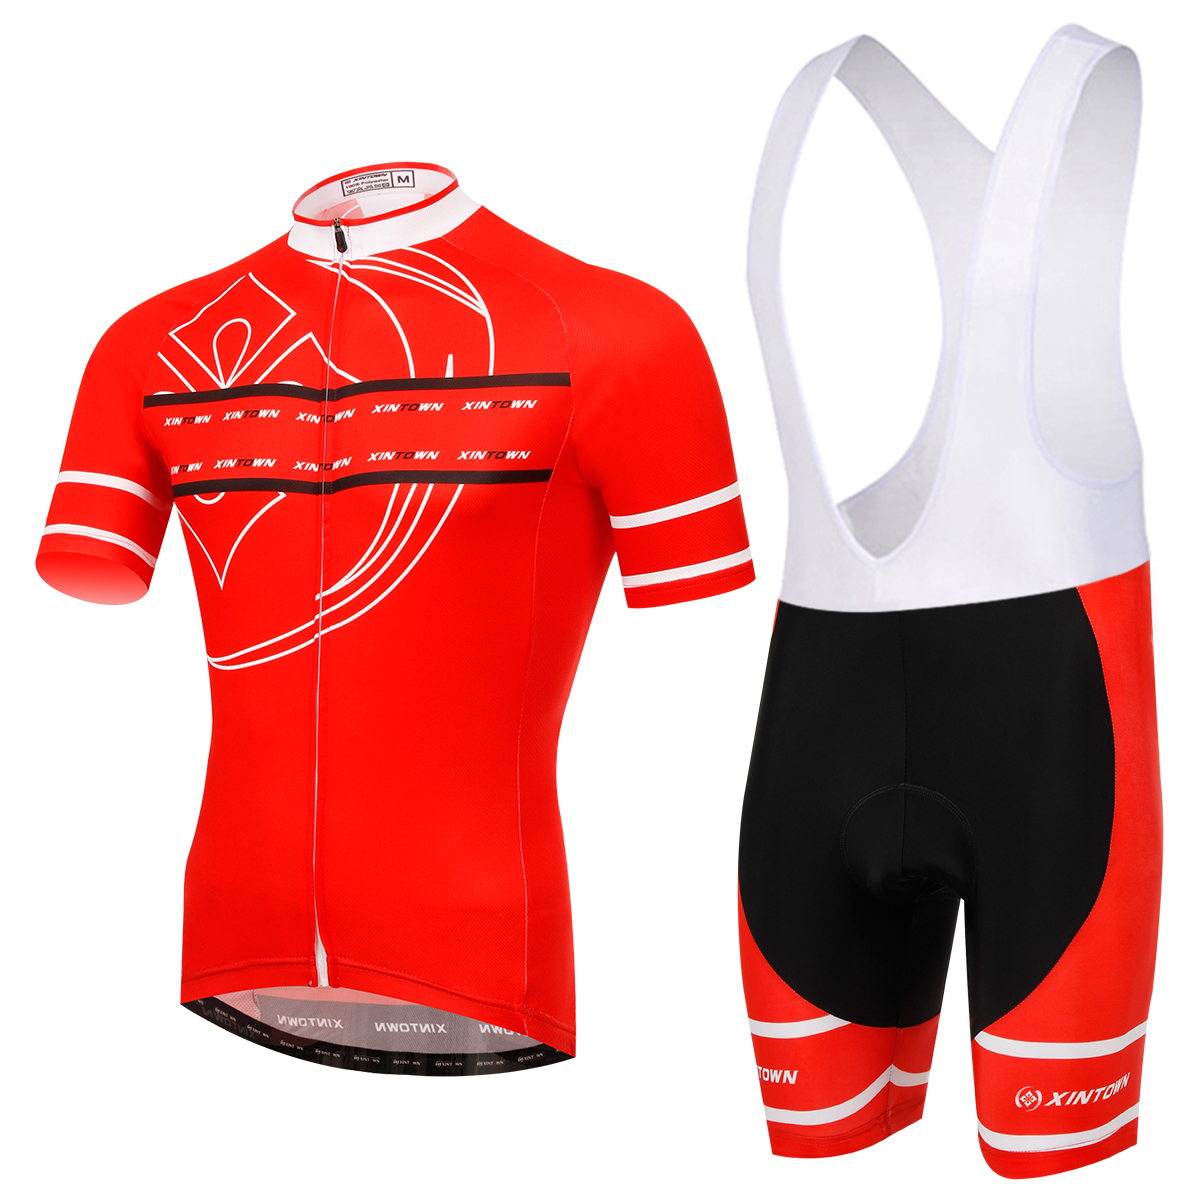 Breathable Red Cycling Jersey Bike Clothing Mountain Bicycle Jerseys Racing Ropa Ciclismo GEL Pad Cycle Wear Bib Sets women s long cycling clothing mountain bike kit reflective cycle jersey